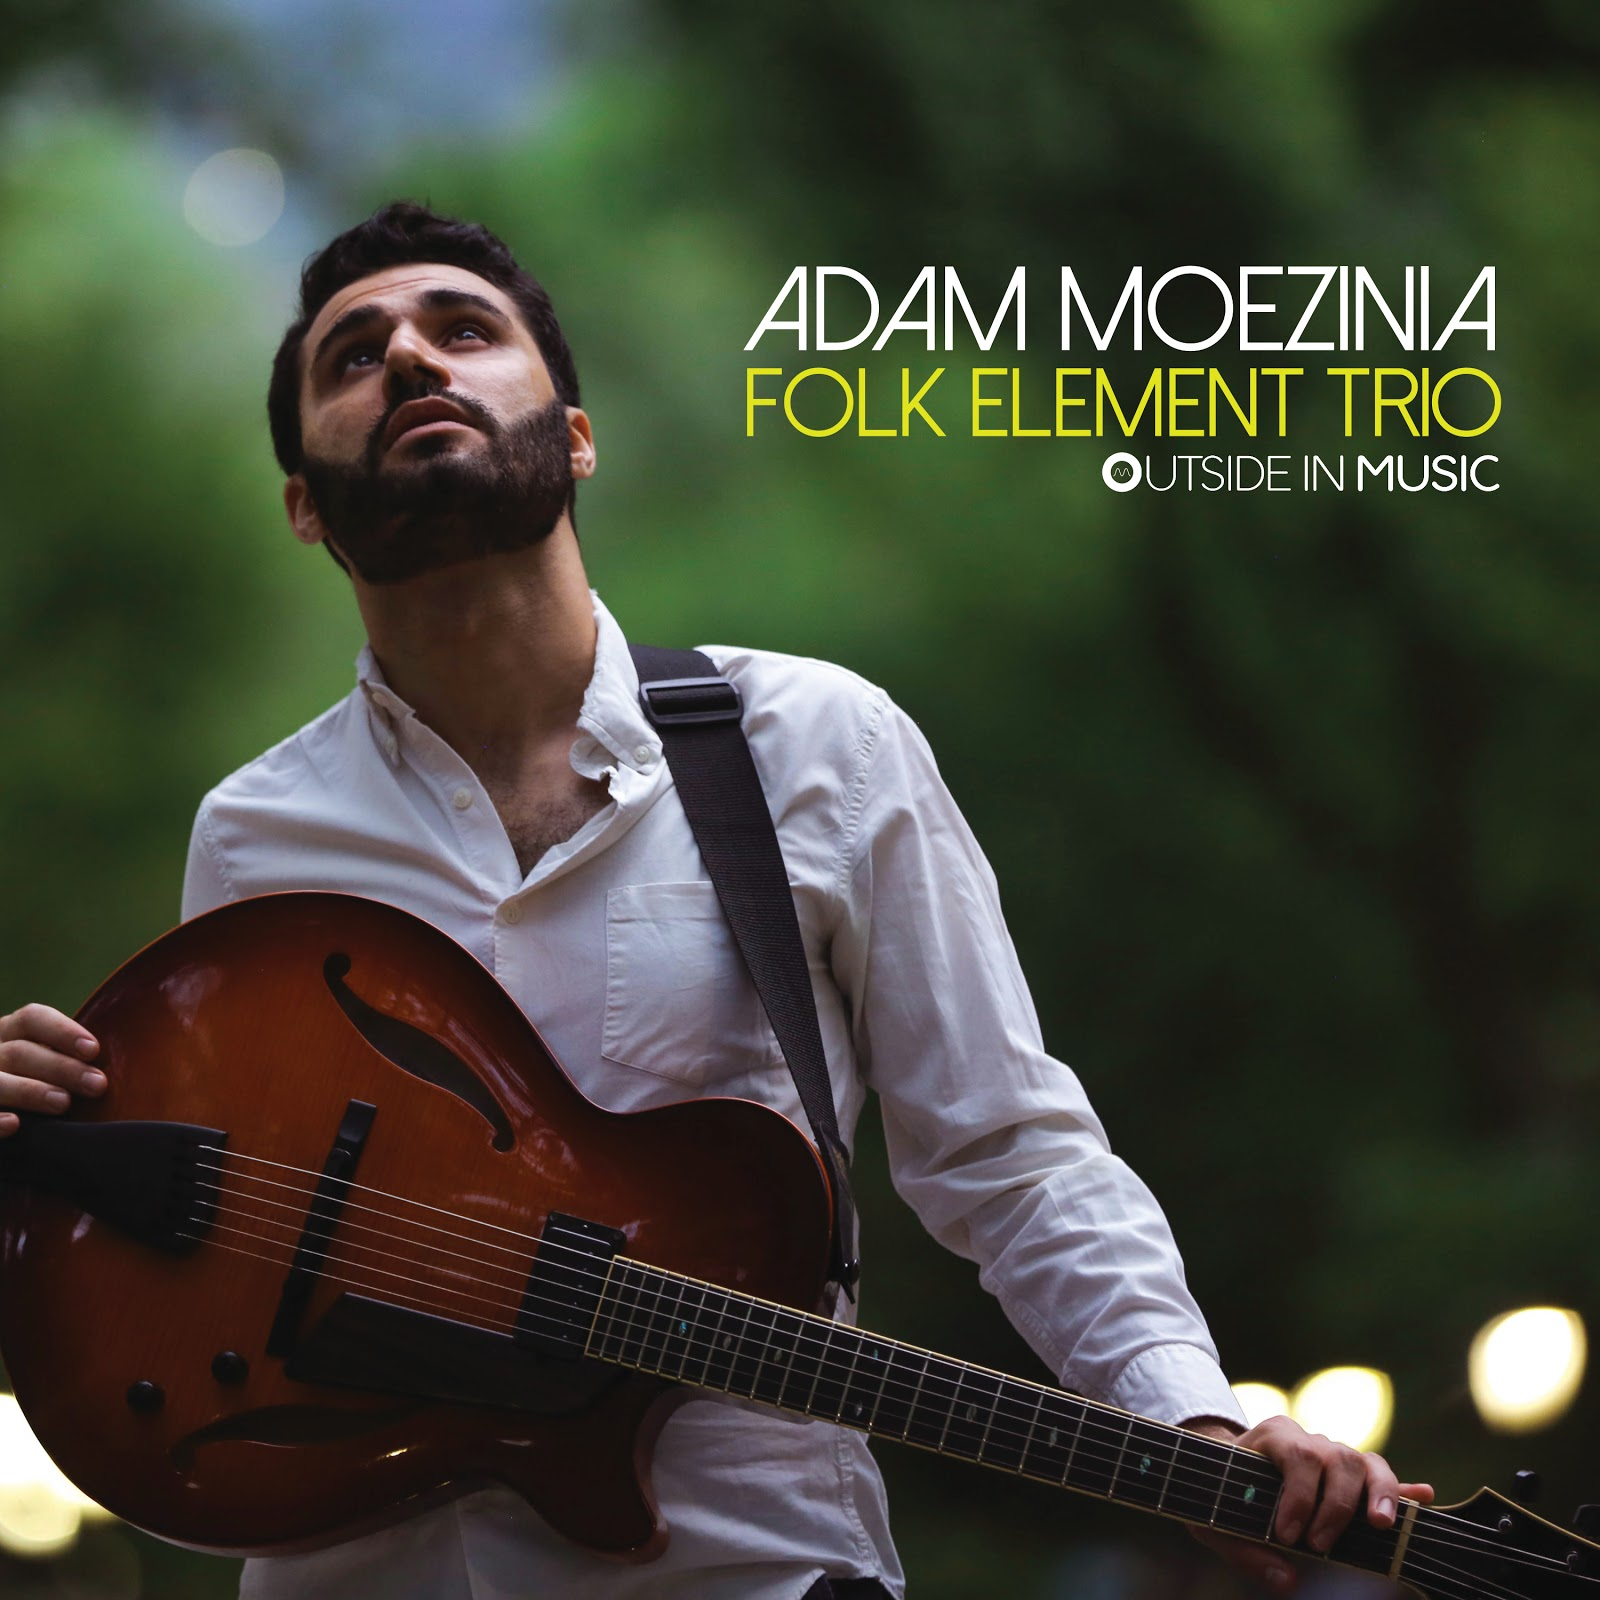 NEW RELEASE: Adam Moezinia's FOLK ELEMENT TRIO is out April 16, 2021 via Outside in Music